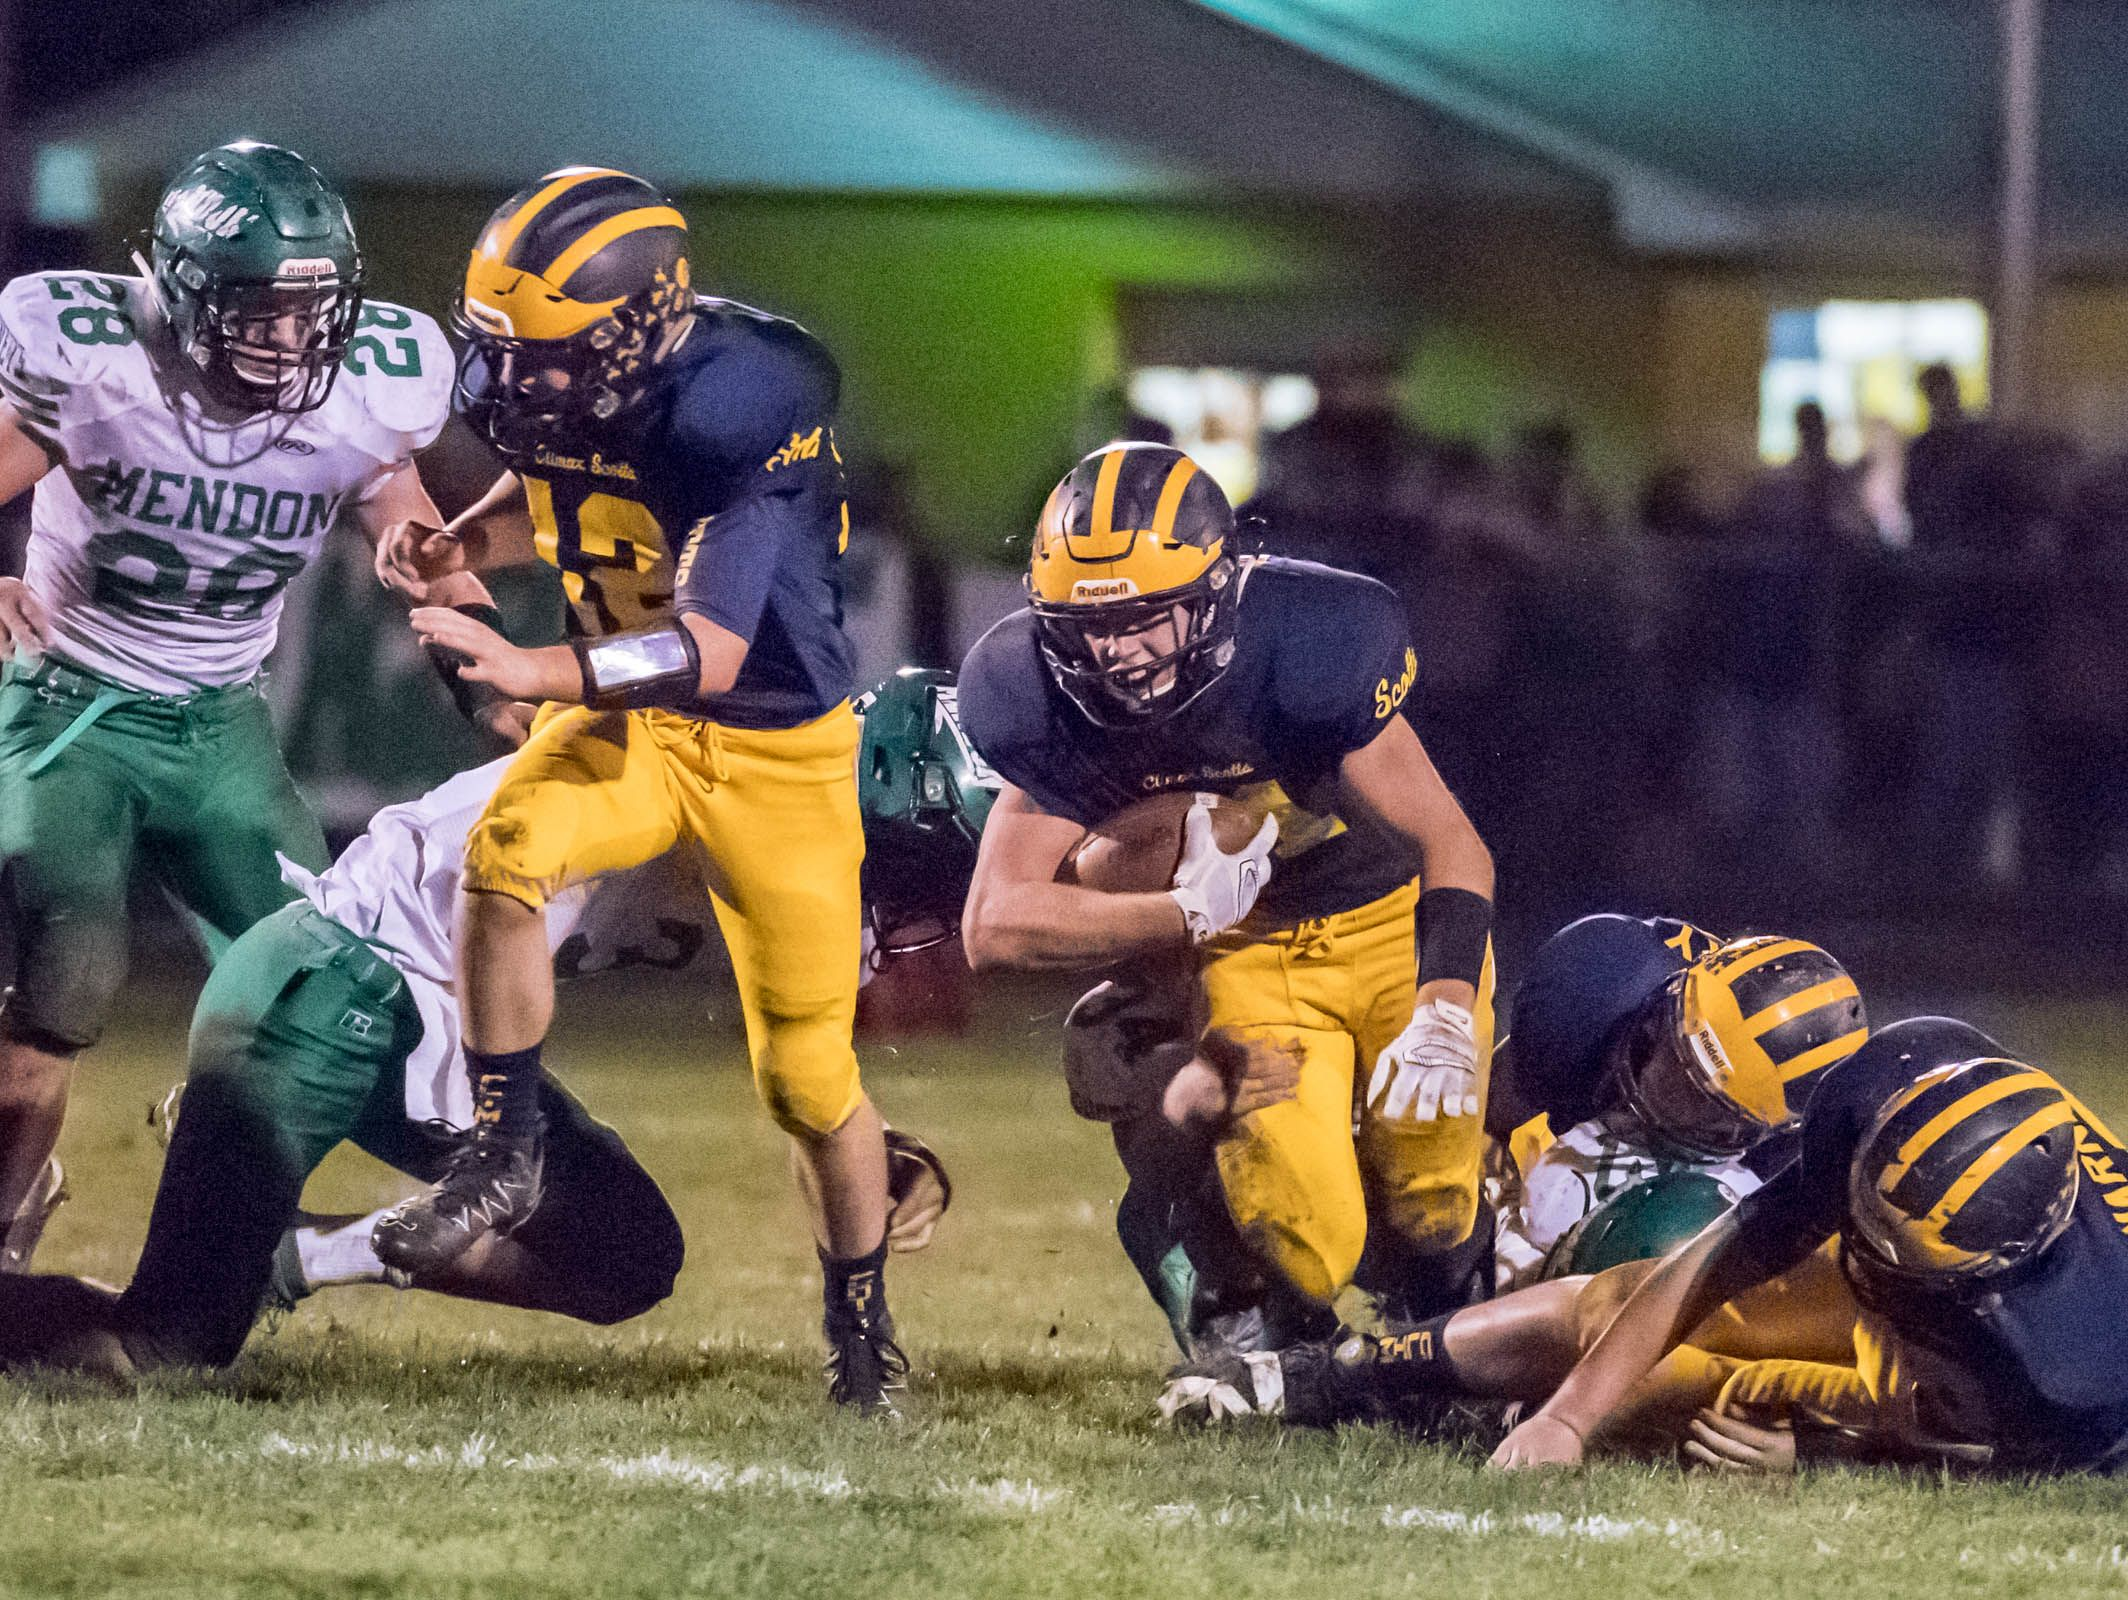 Climax-Scotts's Adam Schantz (20) grinds out for more yardage during first half action against Mendon in the second round of the playoffs